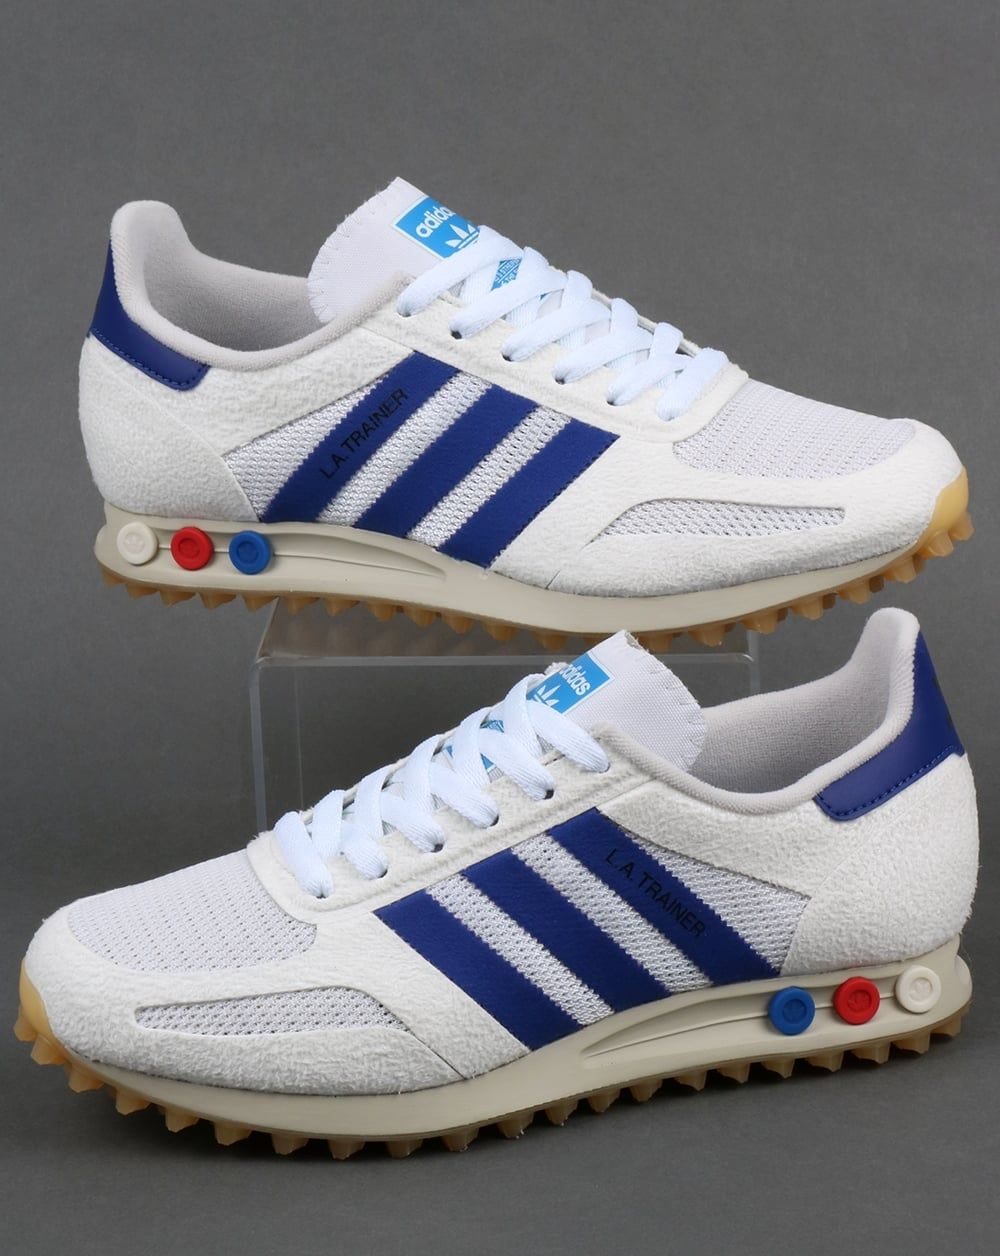 new style d4a96 93b76 Adidas La Trainer OG Vintage White Mystery Ink